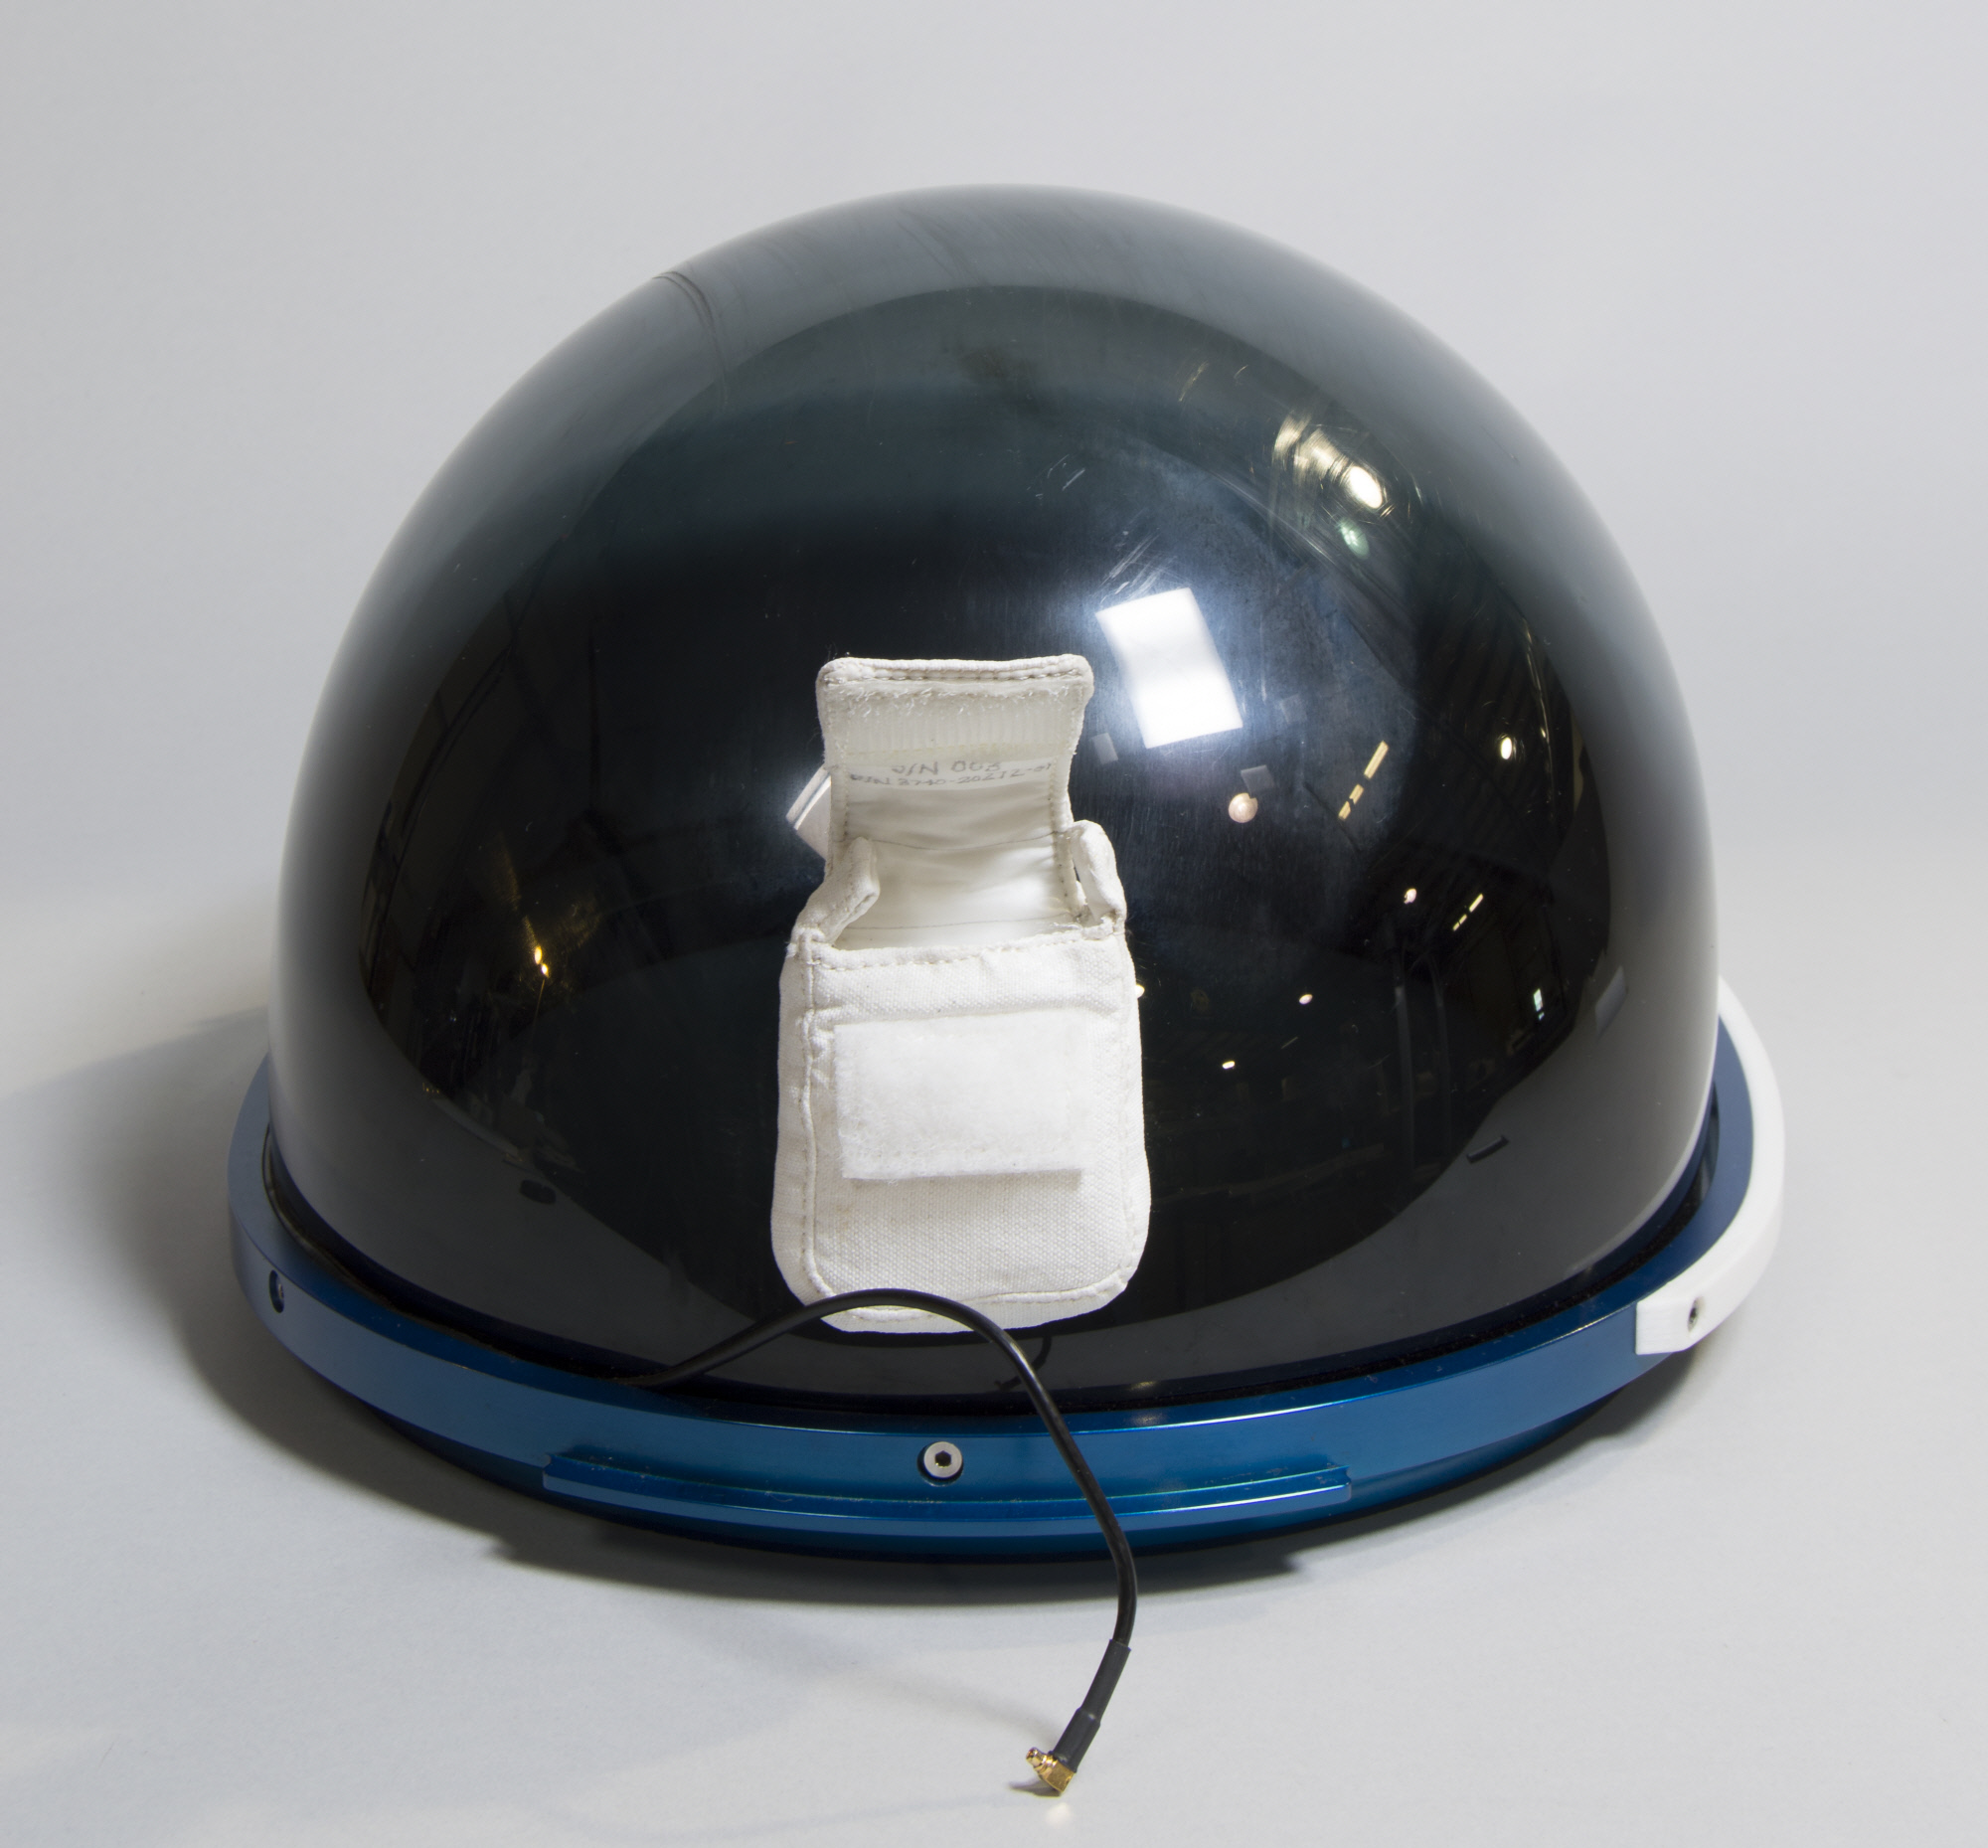 bubble helmet paragon stratex suit national air and